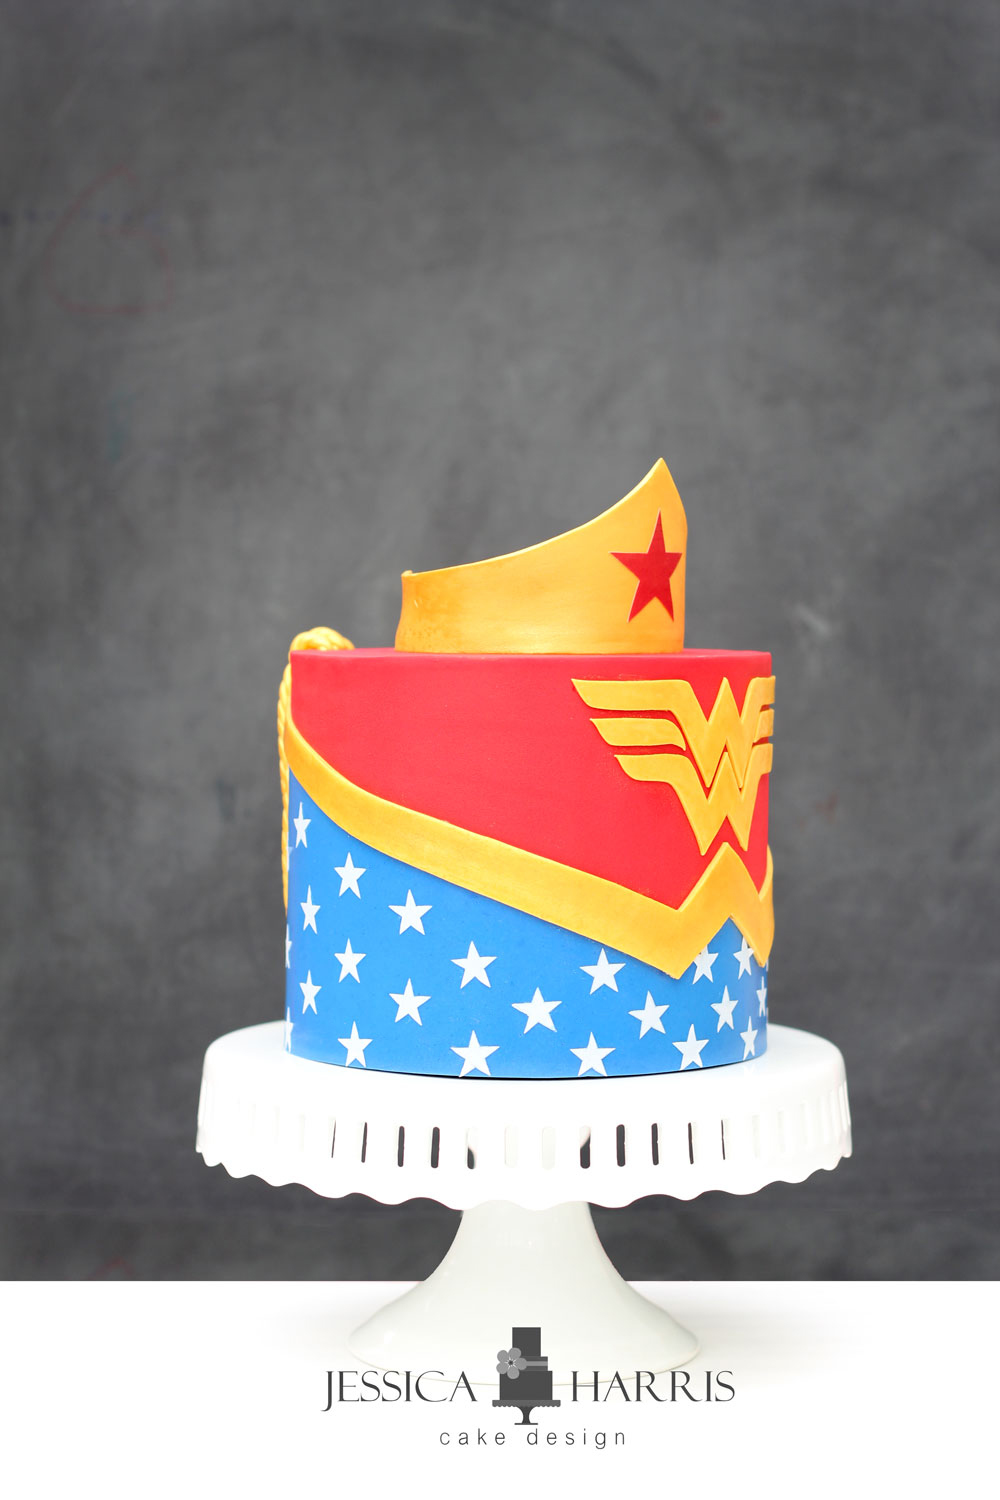 How to make a wonder woman cake